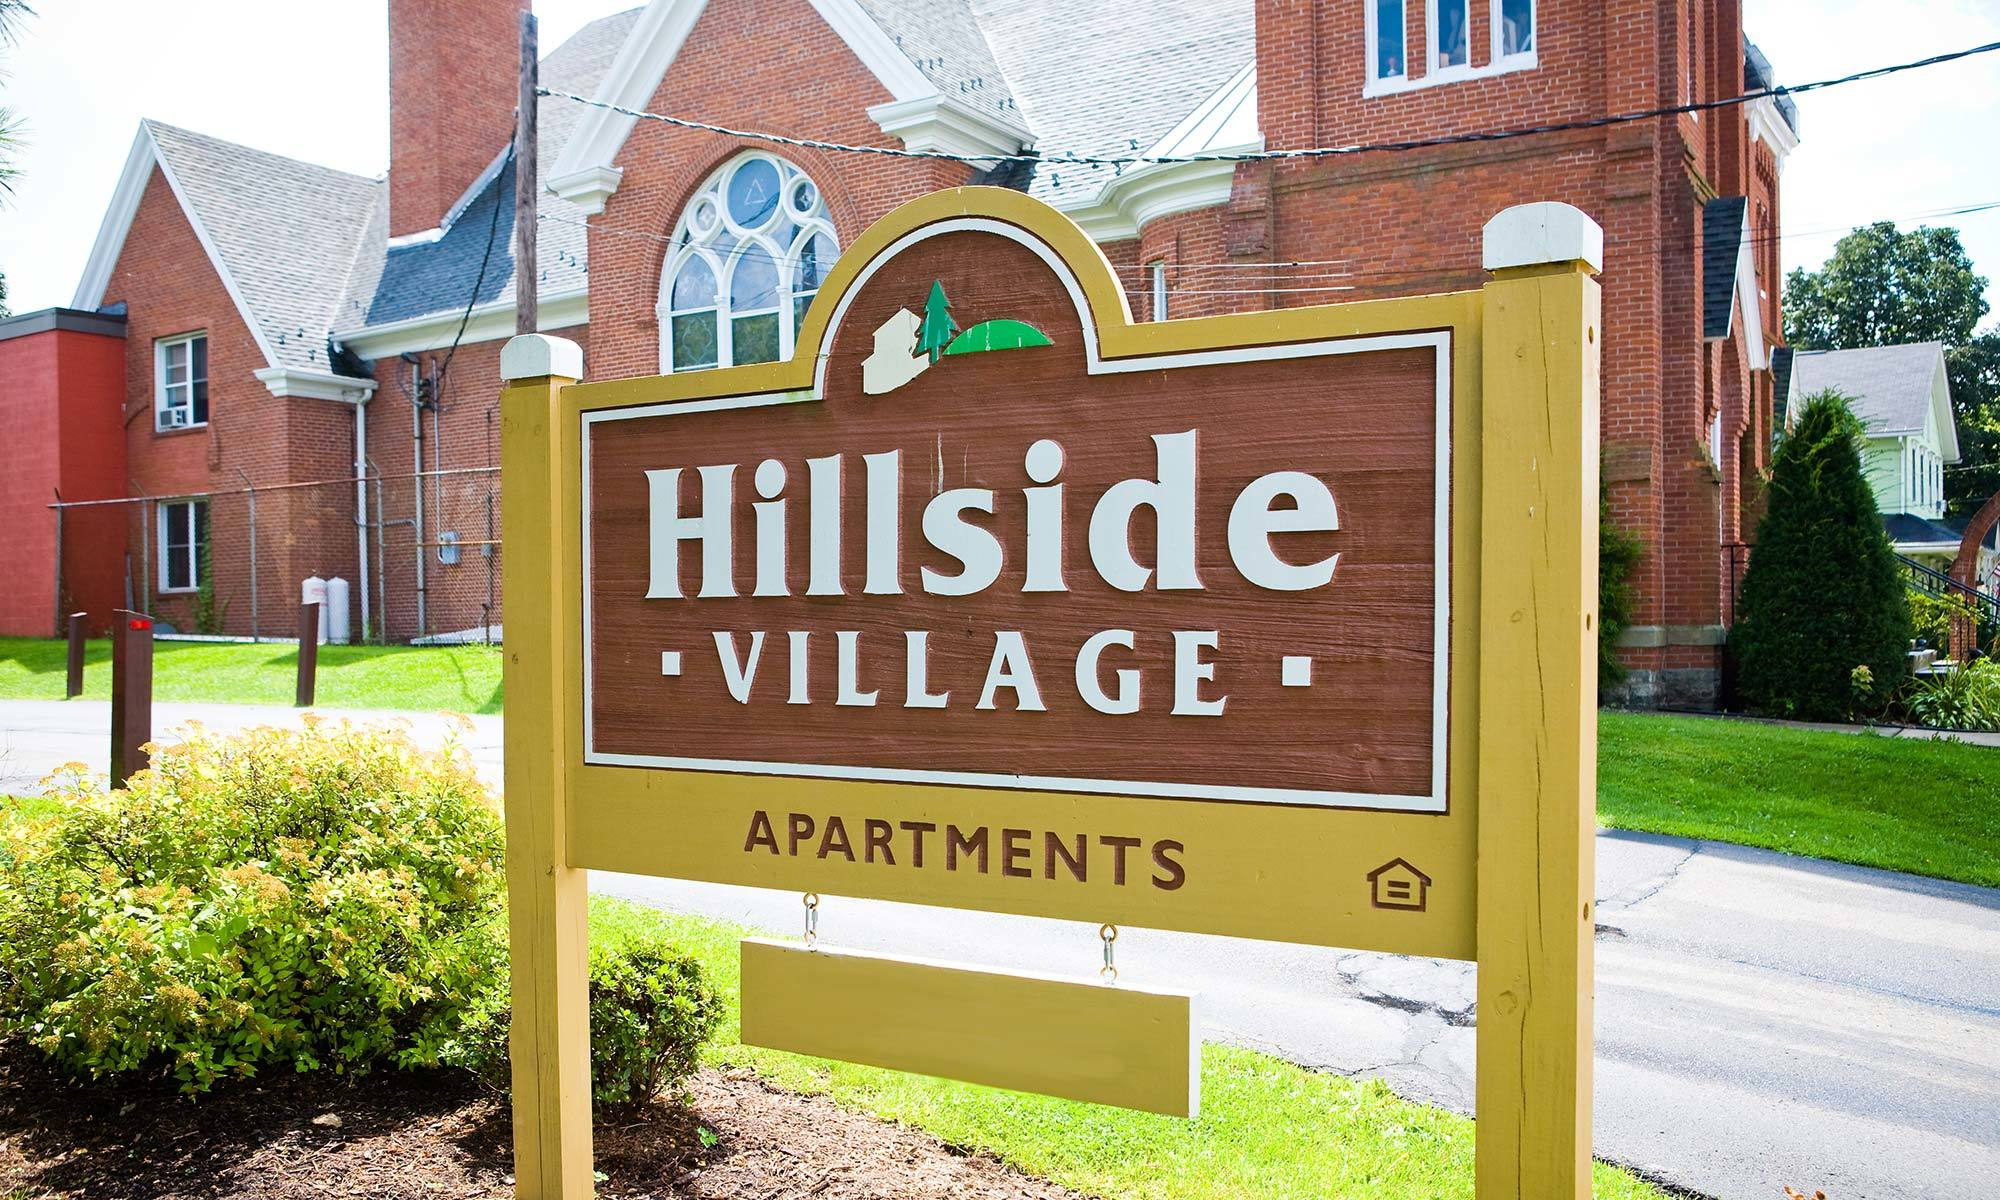 Learn more about our apartments at Hillside Village Apartments in Catawissa, PA.